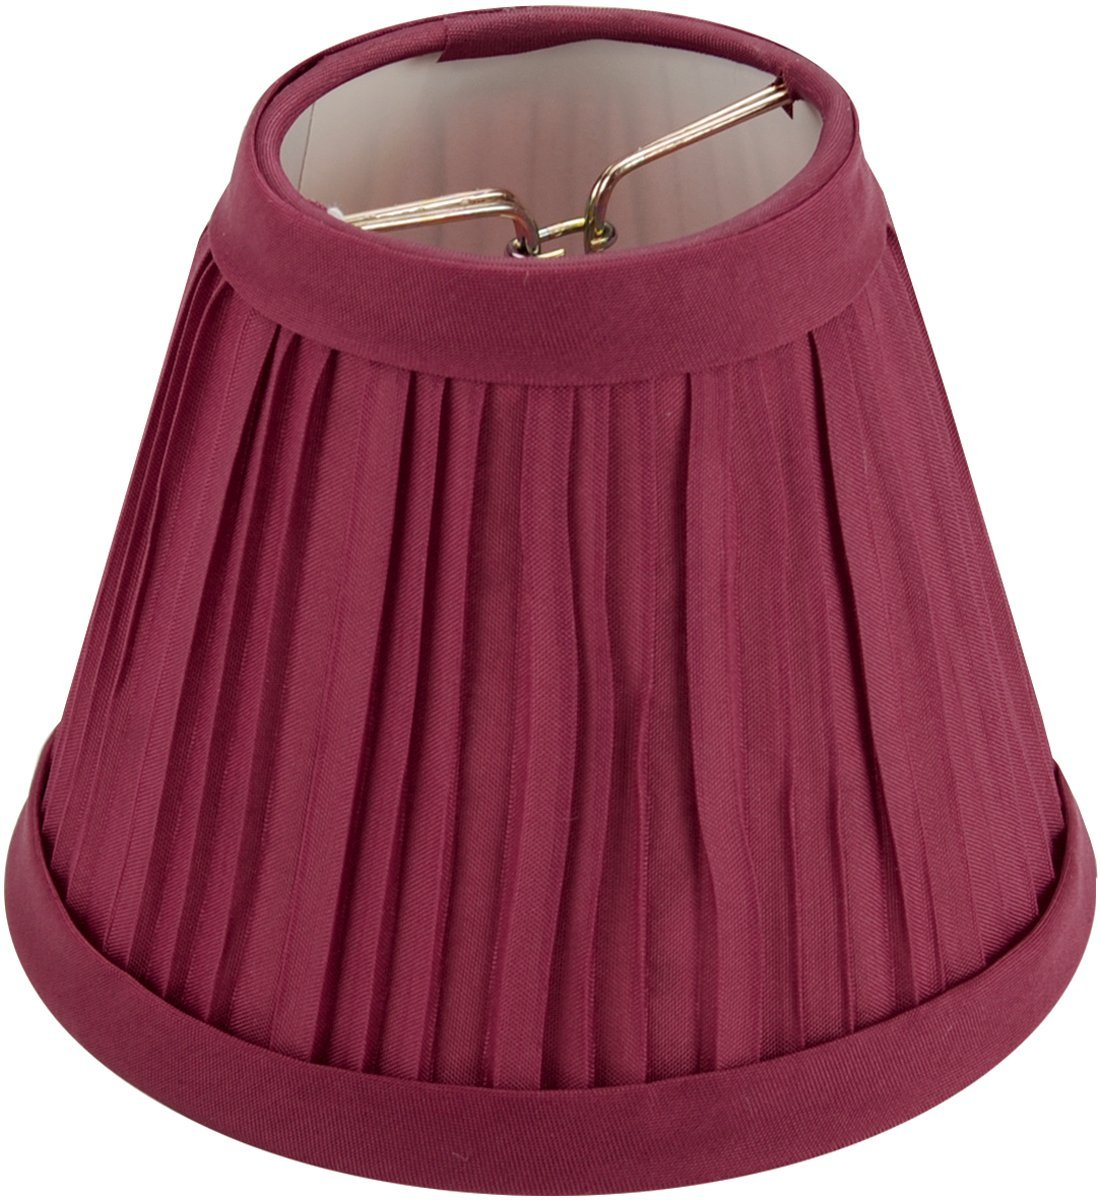 Darice - Pleated Cloth Covered Lamp Shade - Burgundy 2-1/2